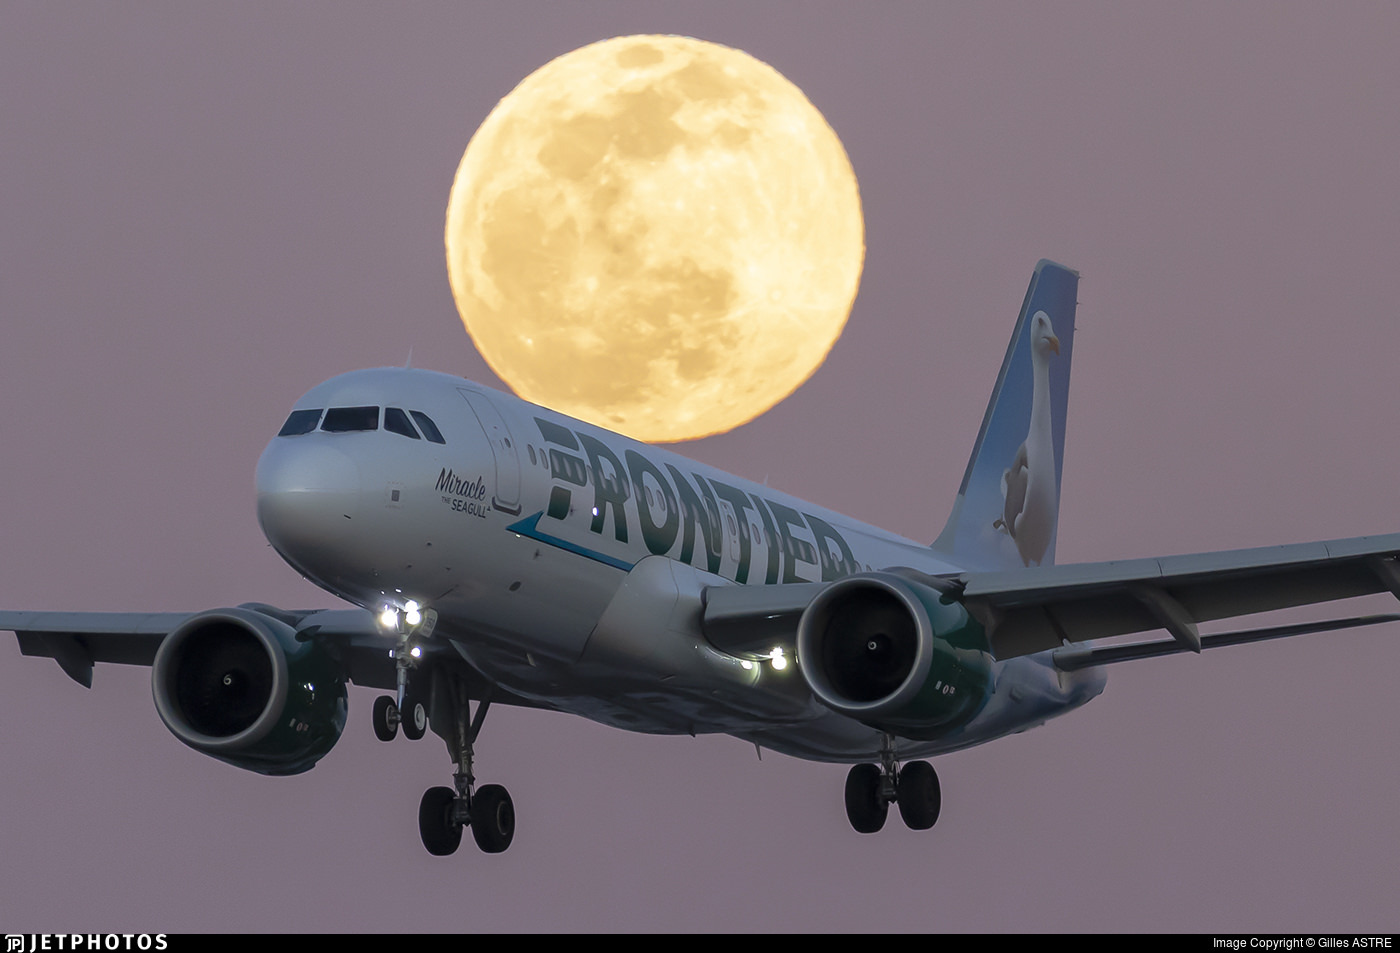 Frontier A320 and a full moon